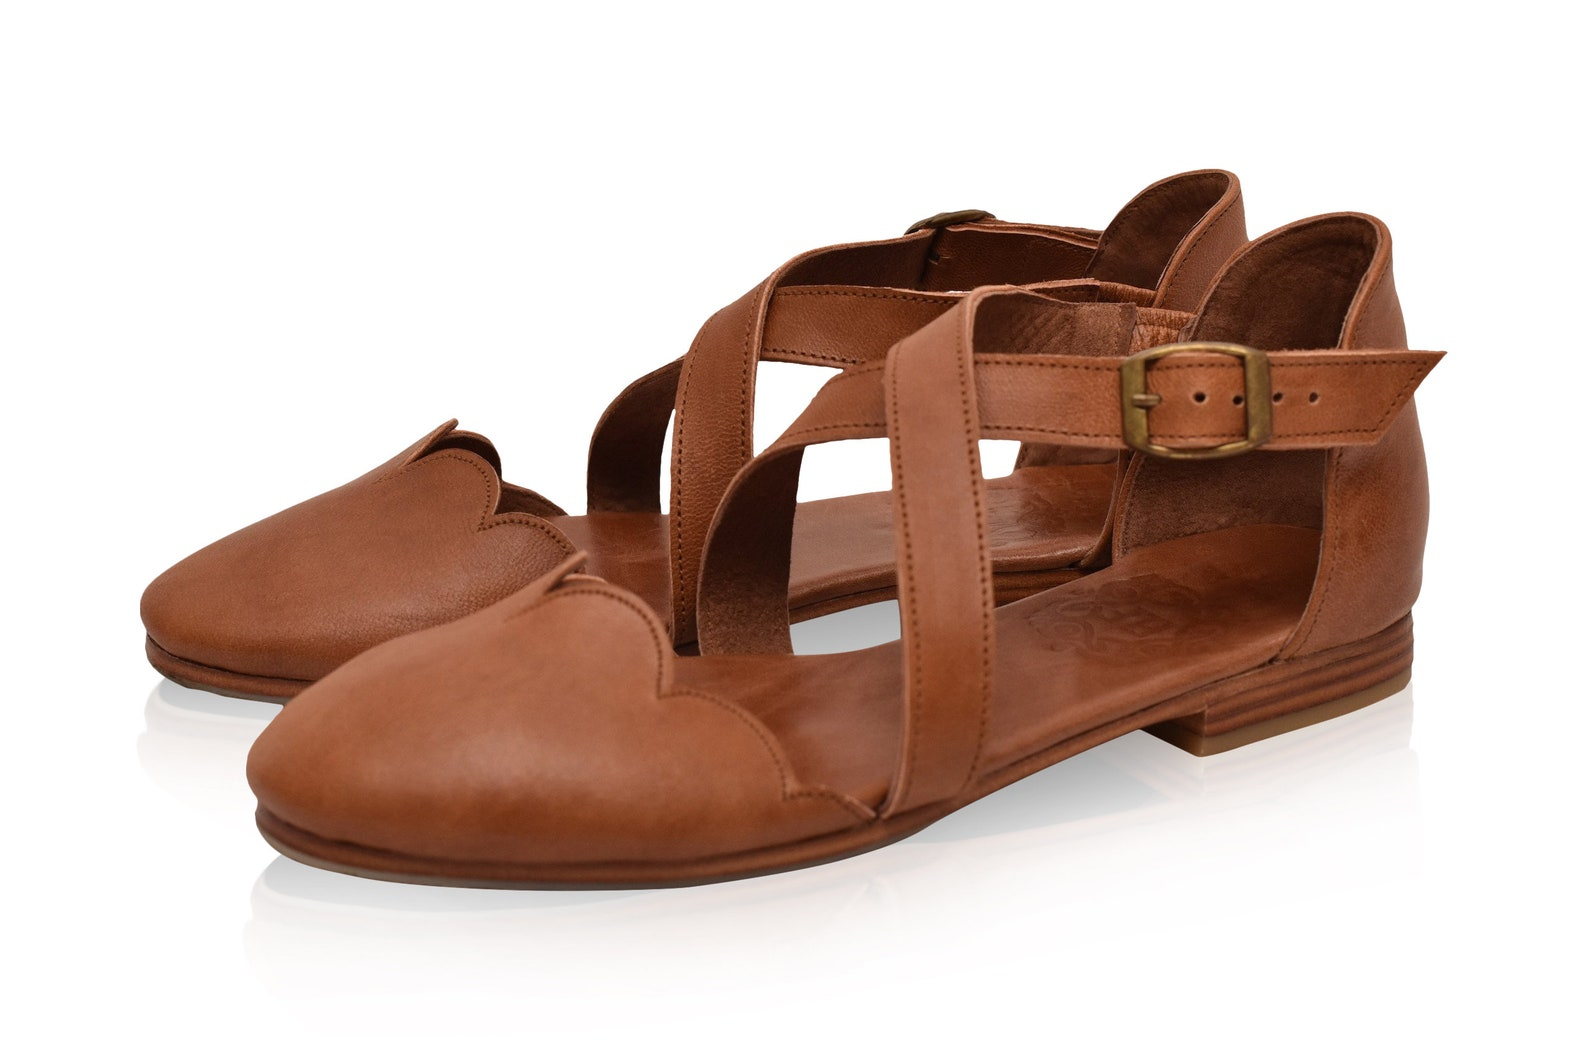 mangrove. ballet flats for women / leather ballet flats / wedding shoes / bridal flats / leather flats. sizes 35-43 available in